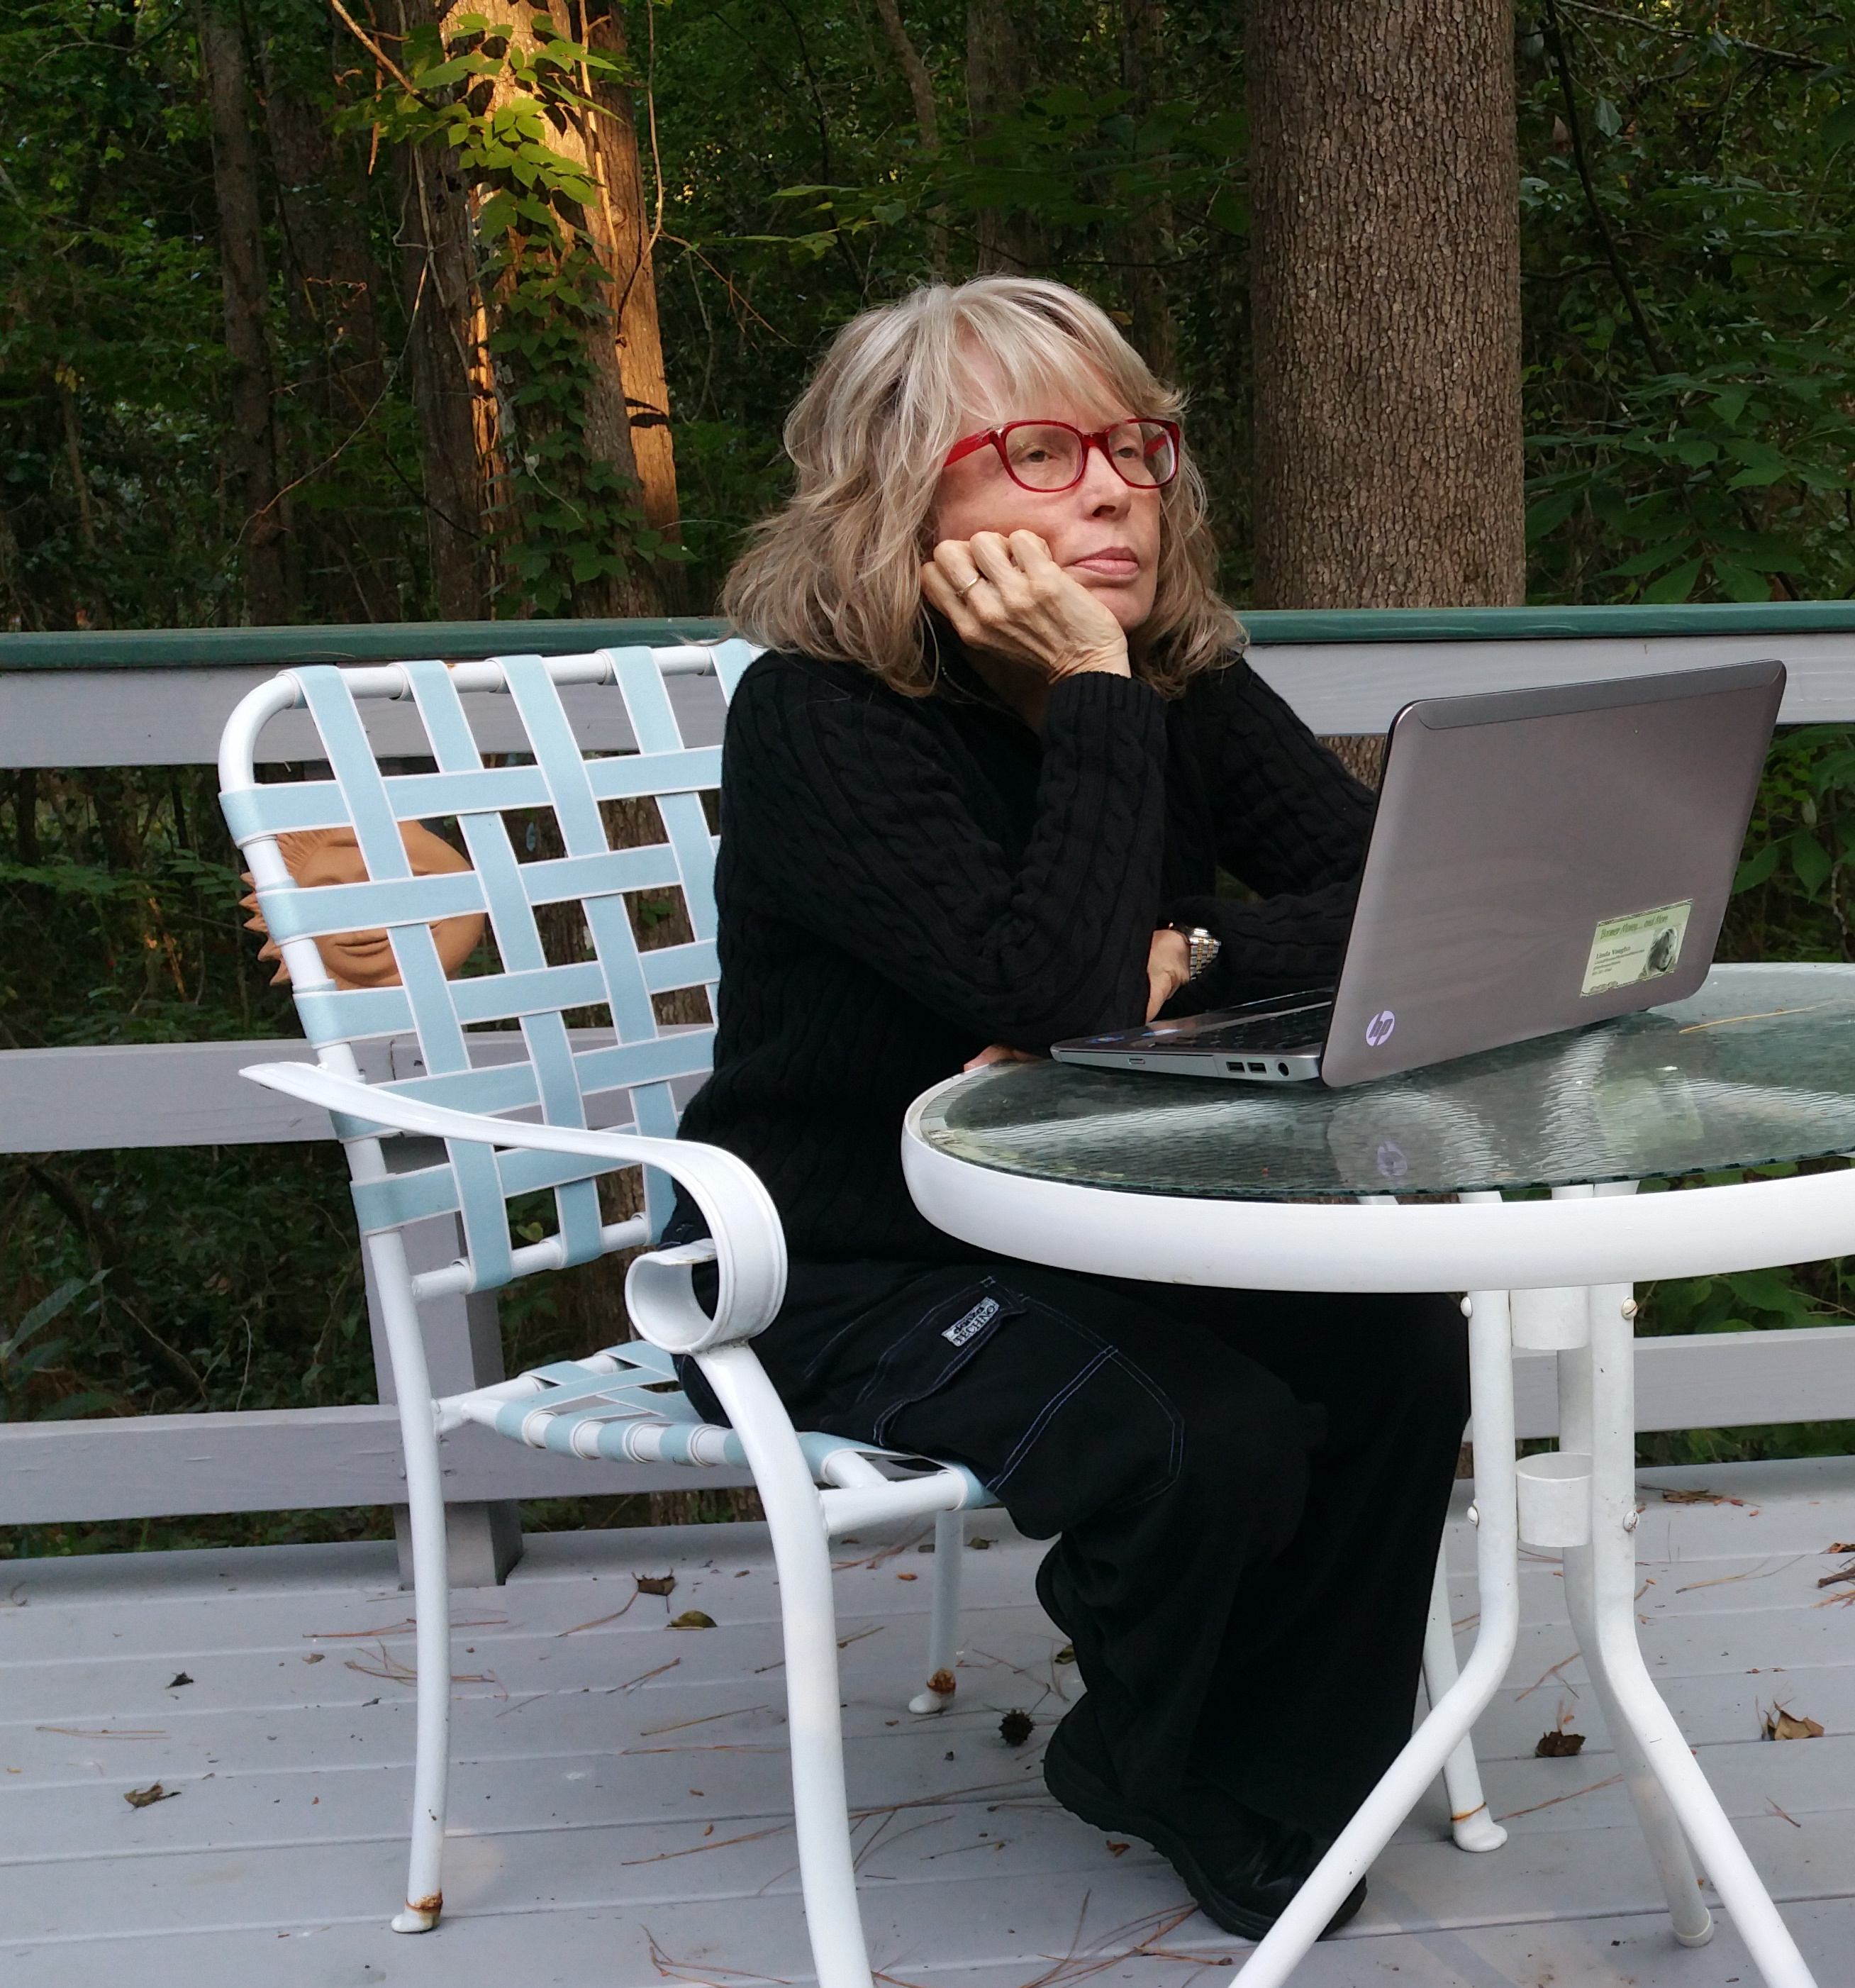 """LV sitting at outdoor table, thinking """"I should have reflected more on my upcoming retirement.."""""""